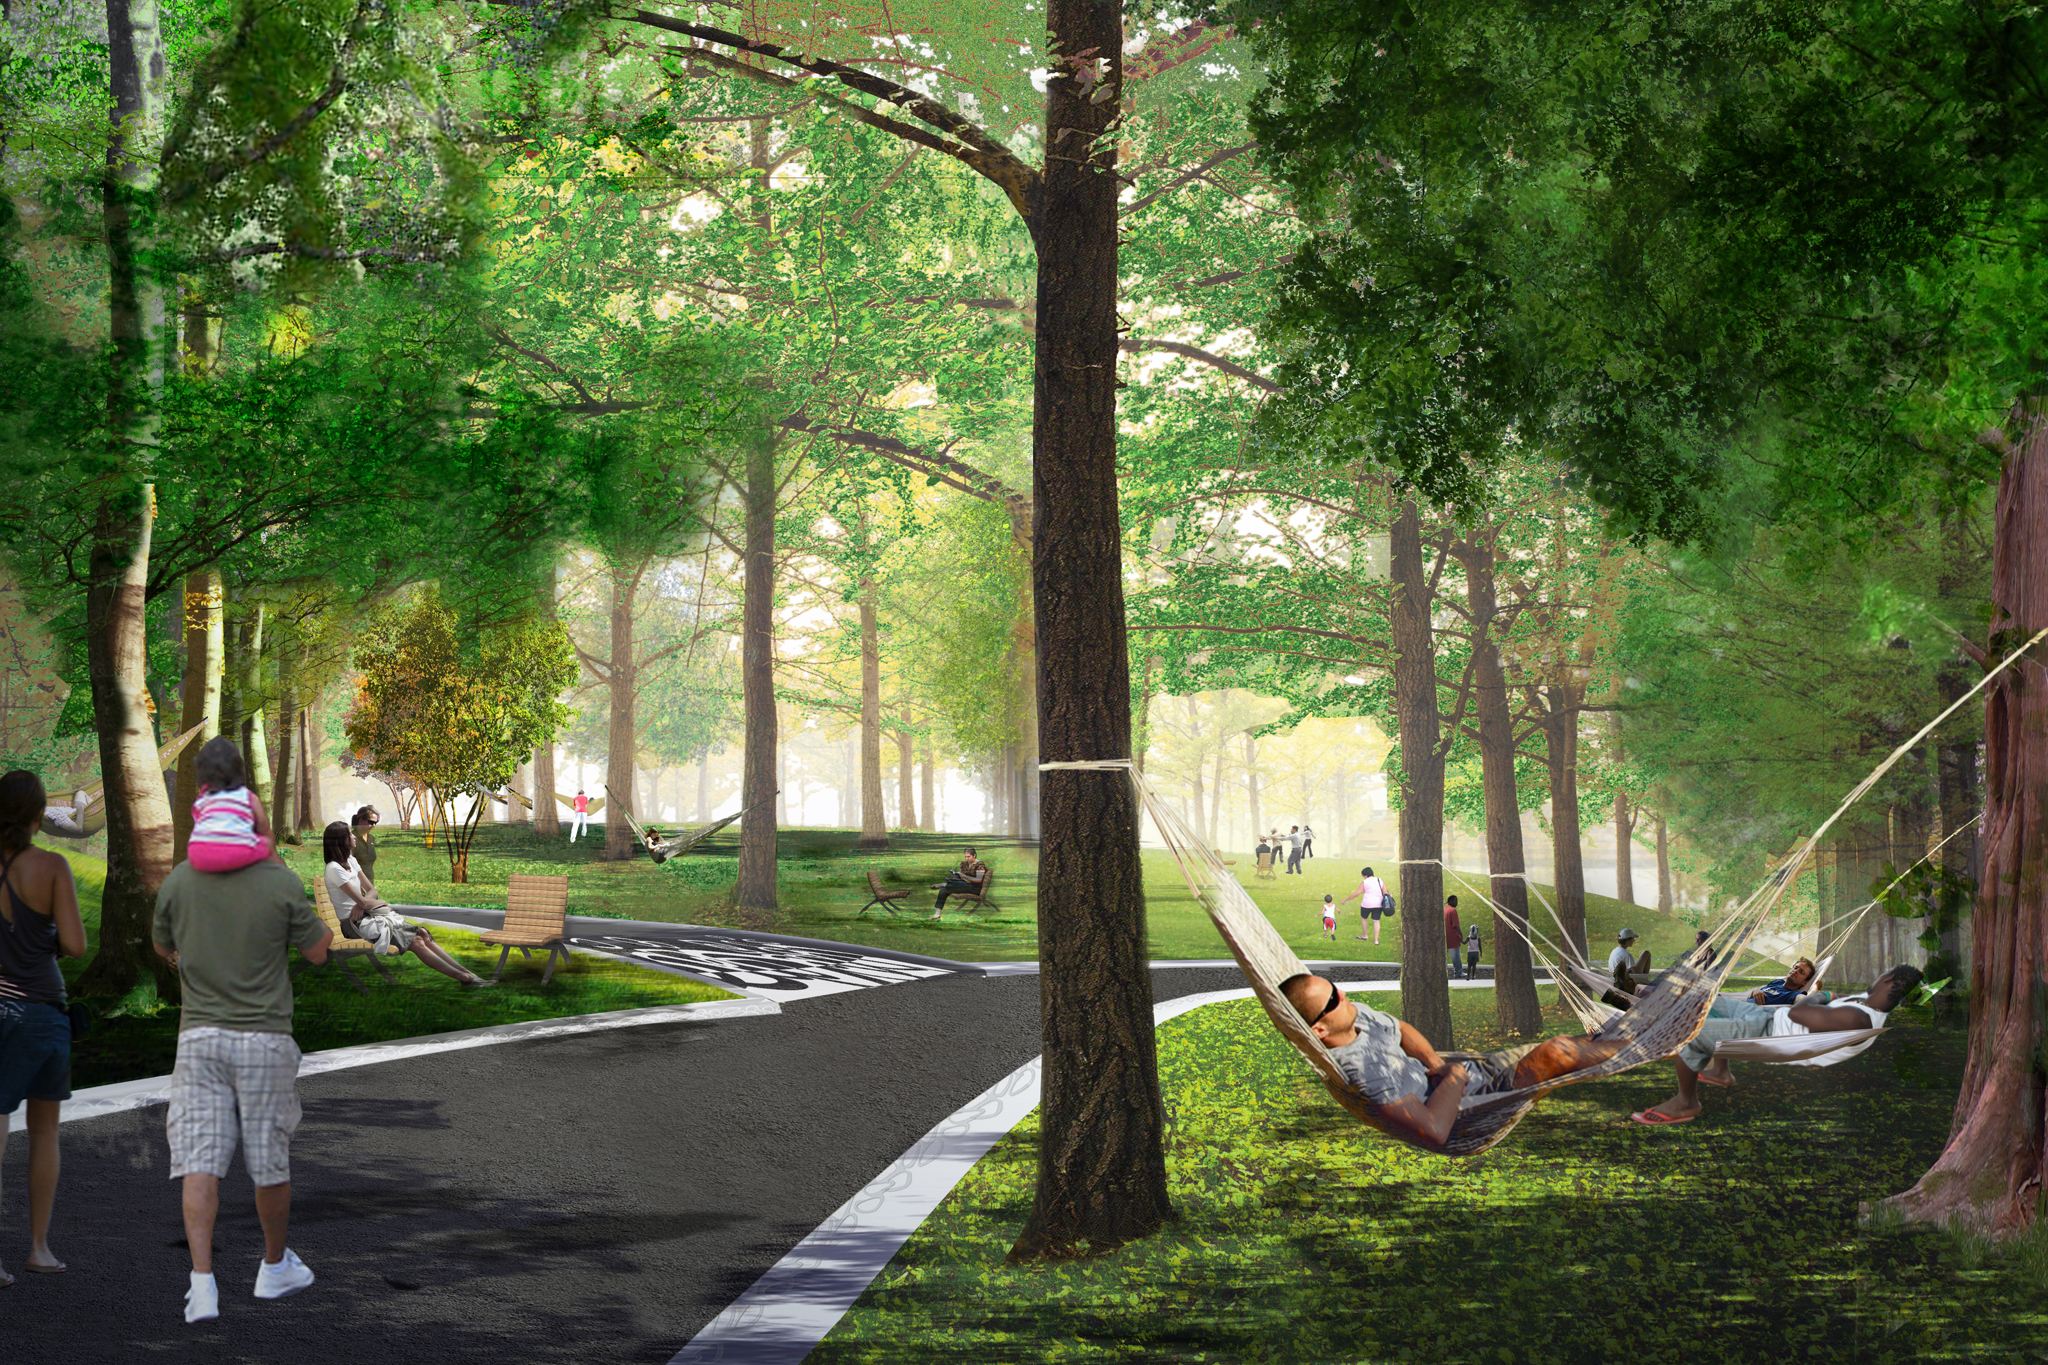 Rendering of Hammock Grove at Governors Island